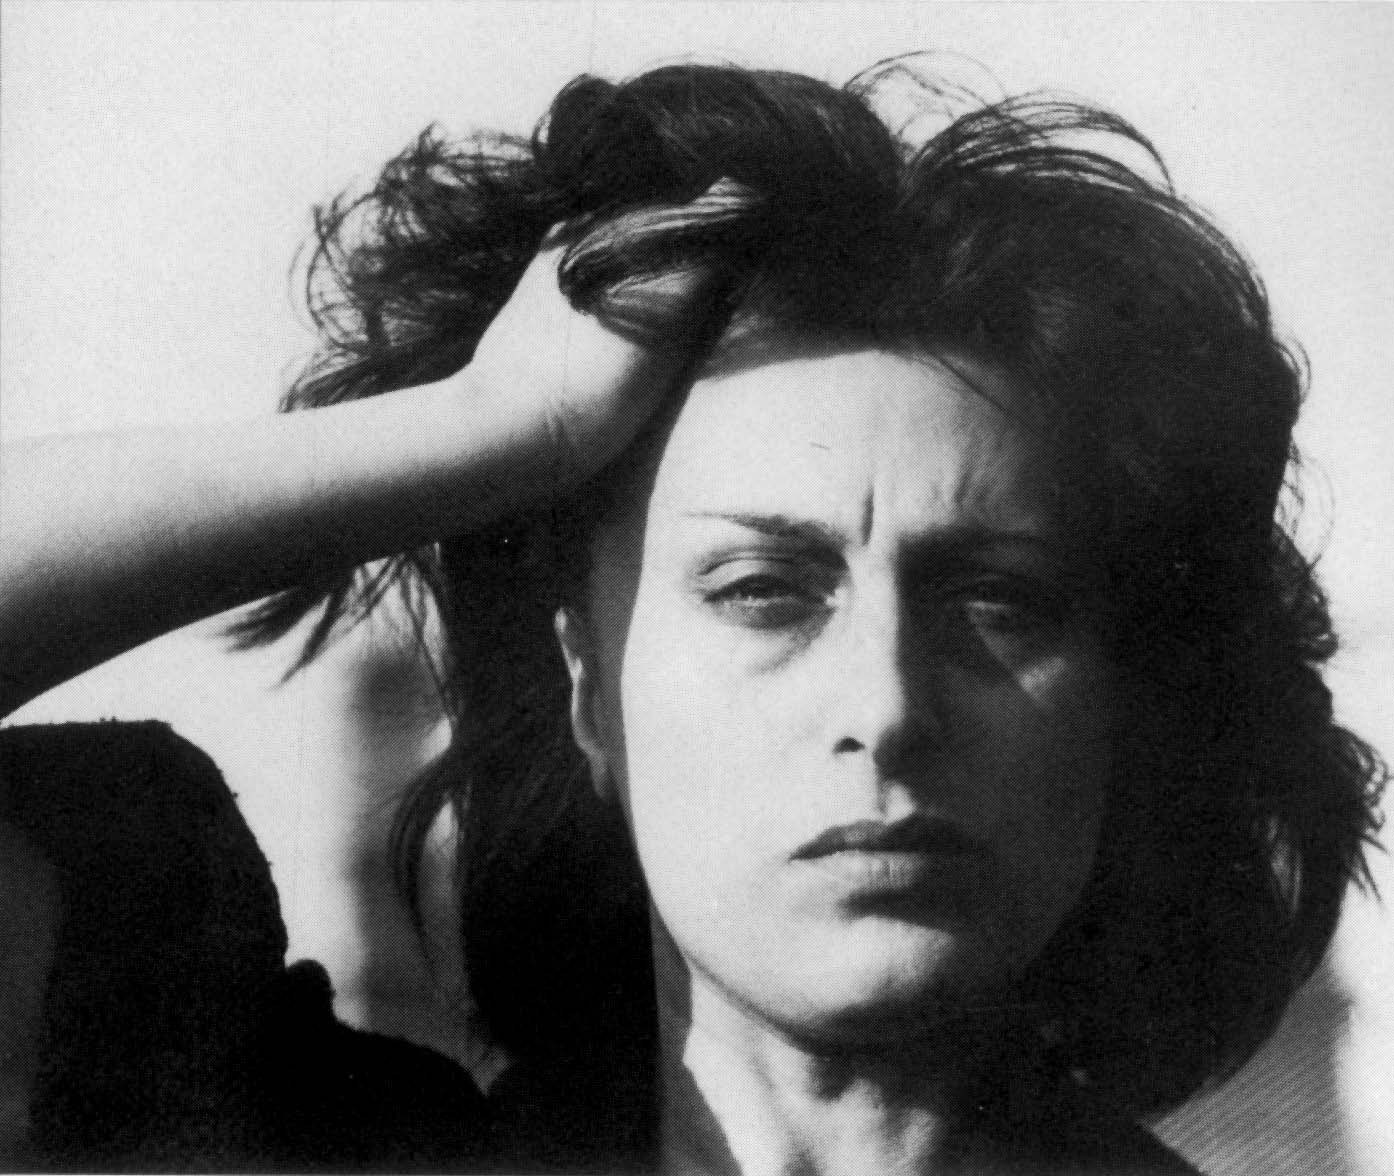 Bien connu Anna Magnani Biography - Childhood, Life Achievements & Timeline VD34